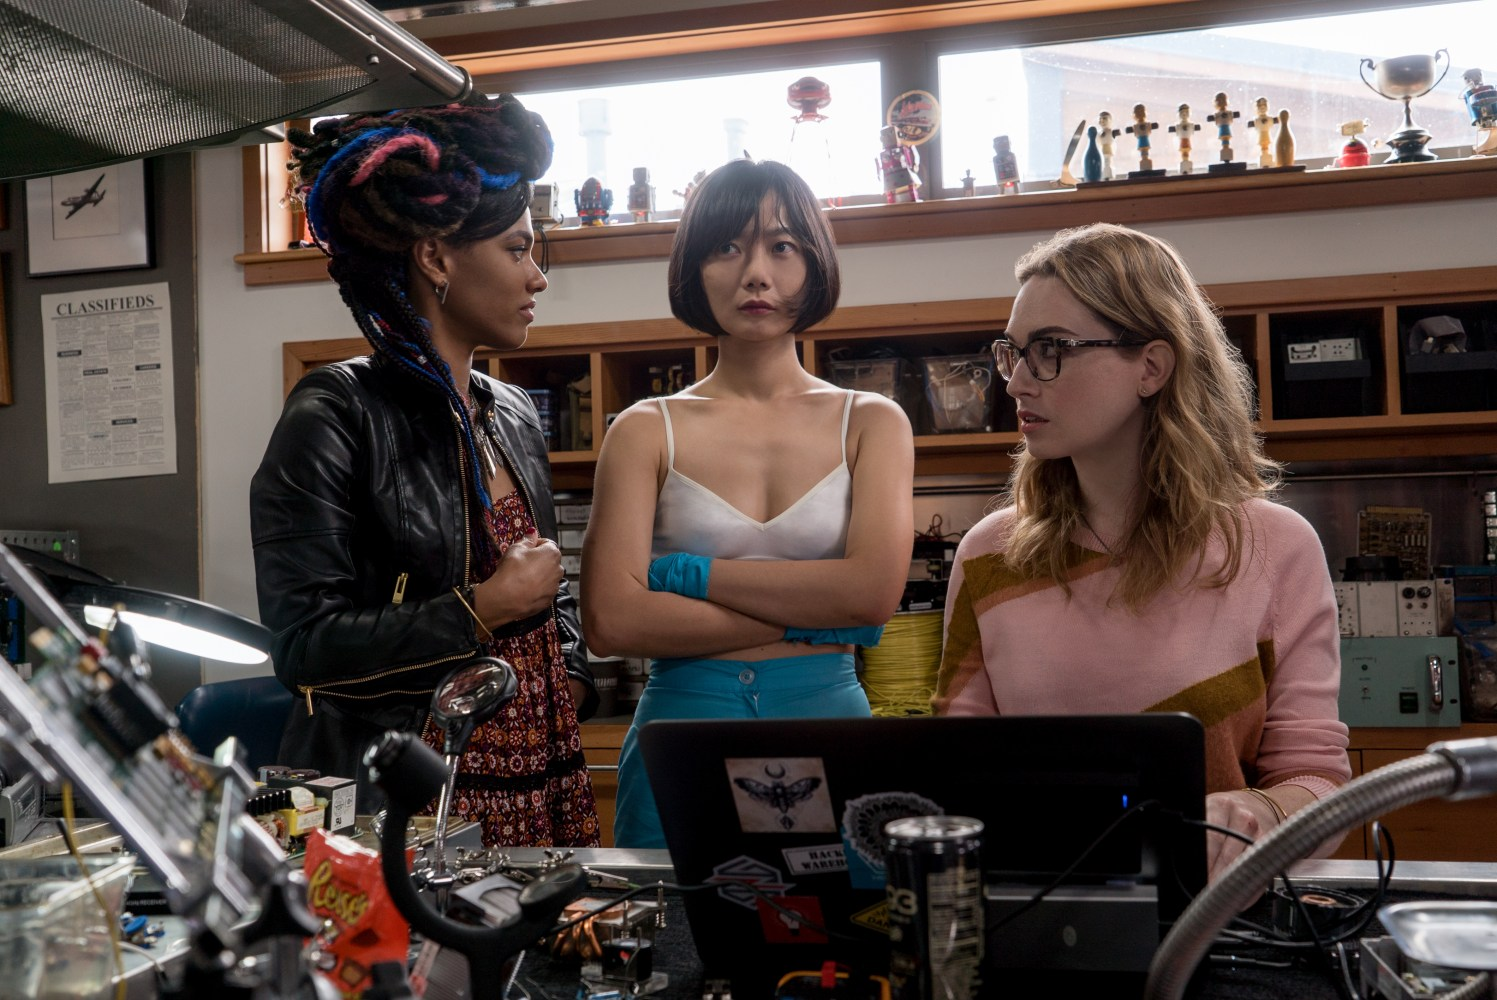 Porn Site Offers to Produce Third Season of Sense8